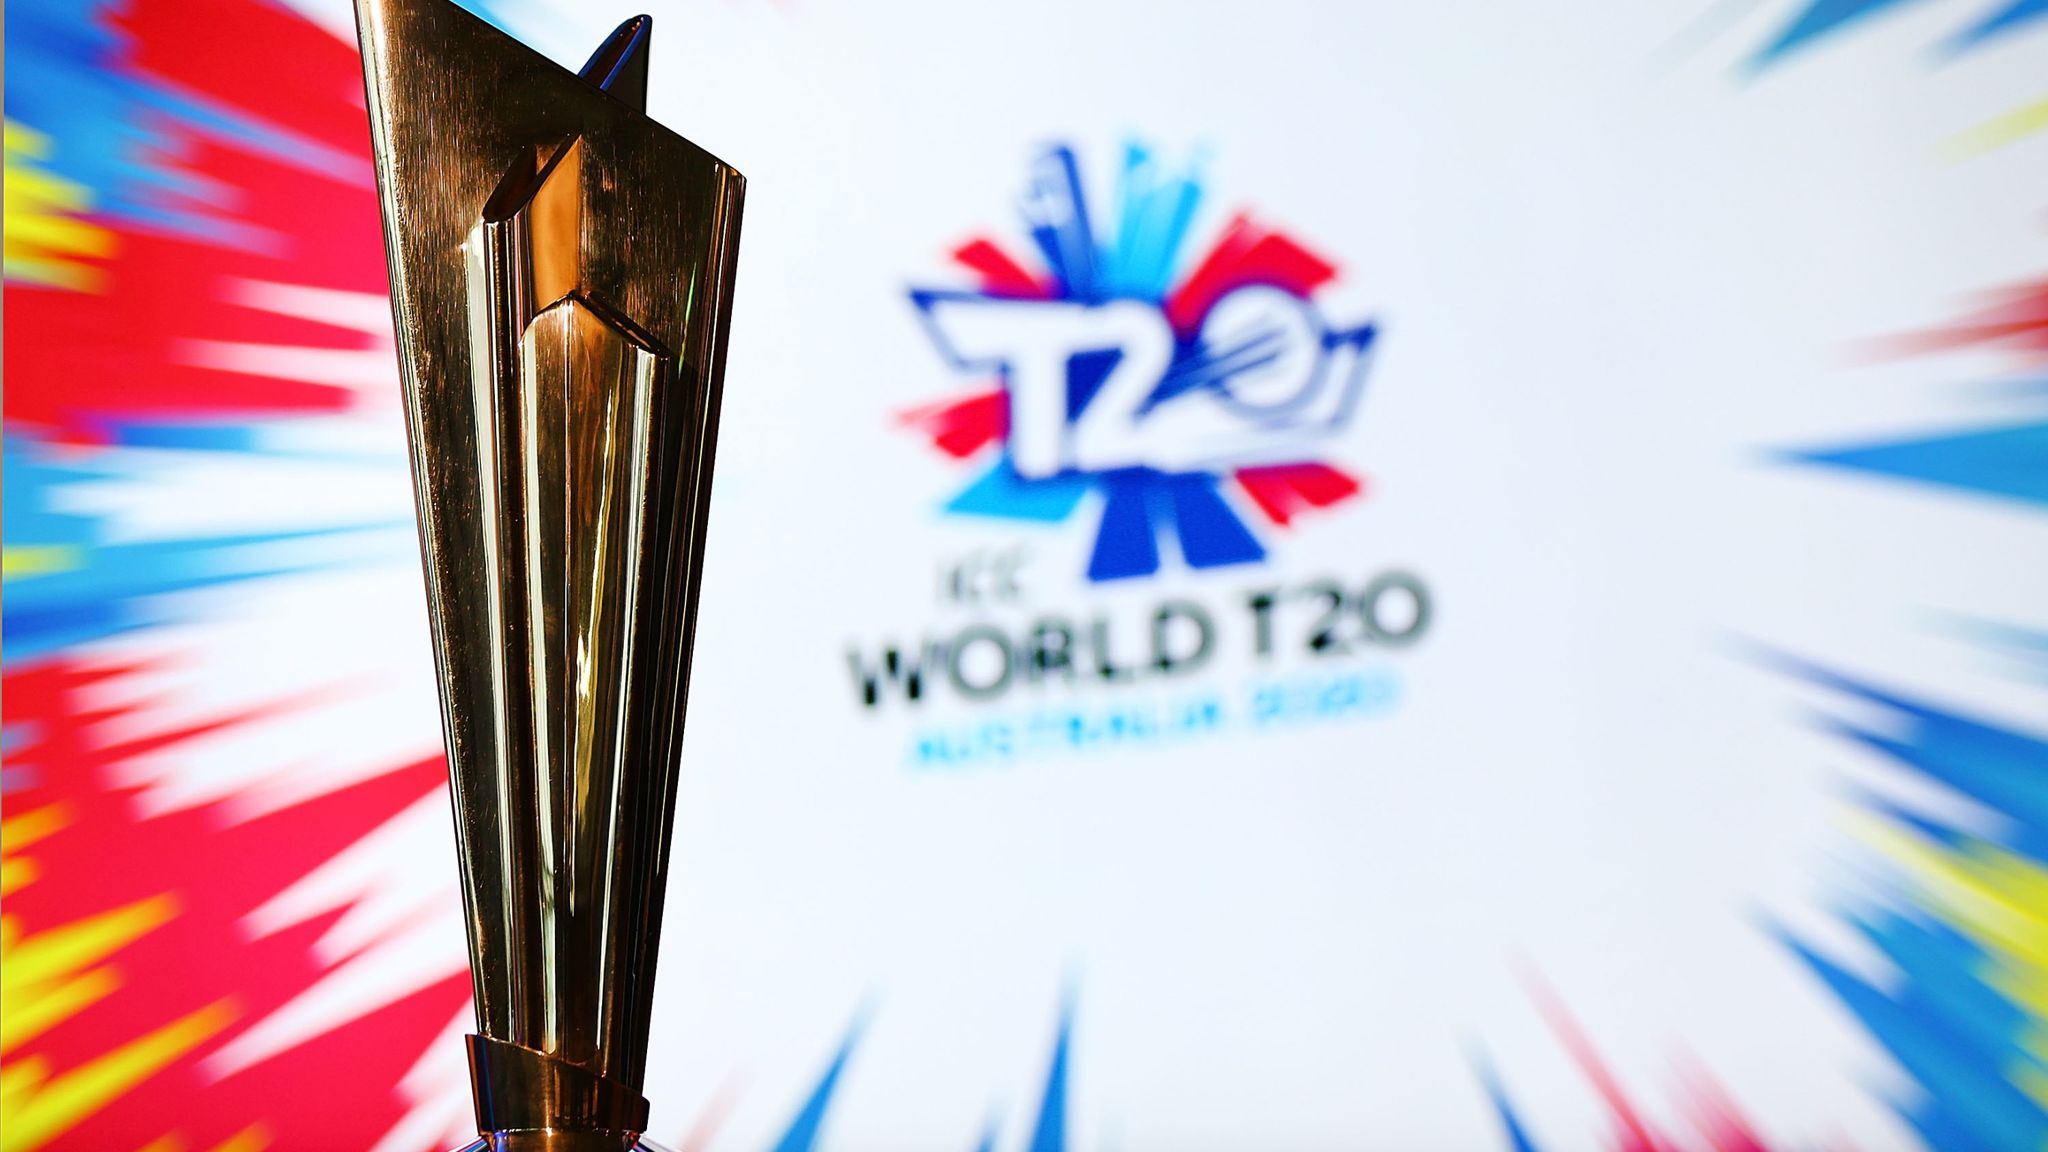 Cricket t20 world cup 2021 betting on sports iesnare matched betting online